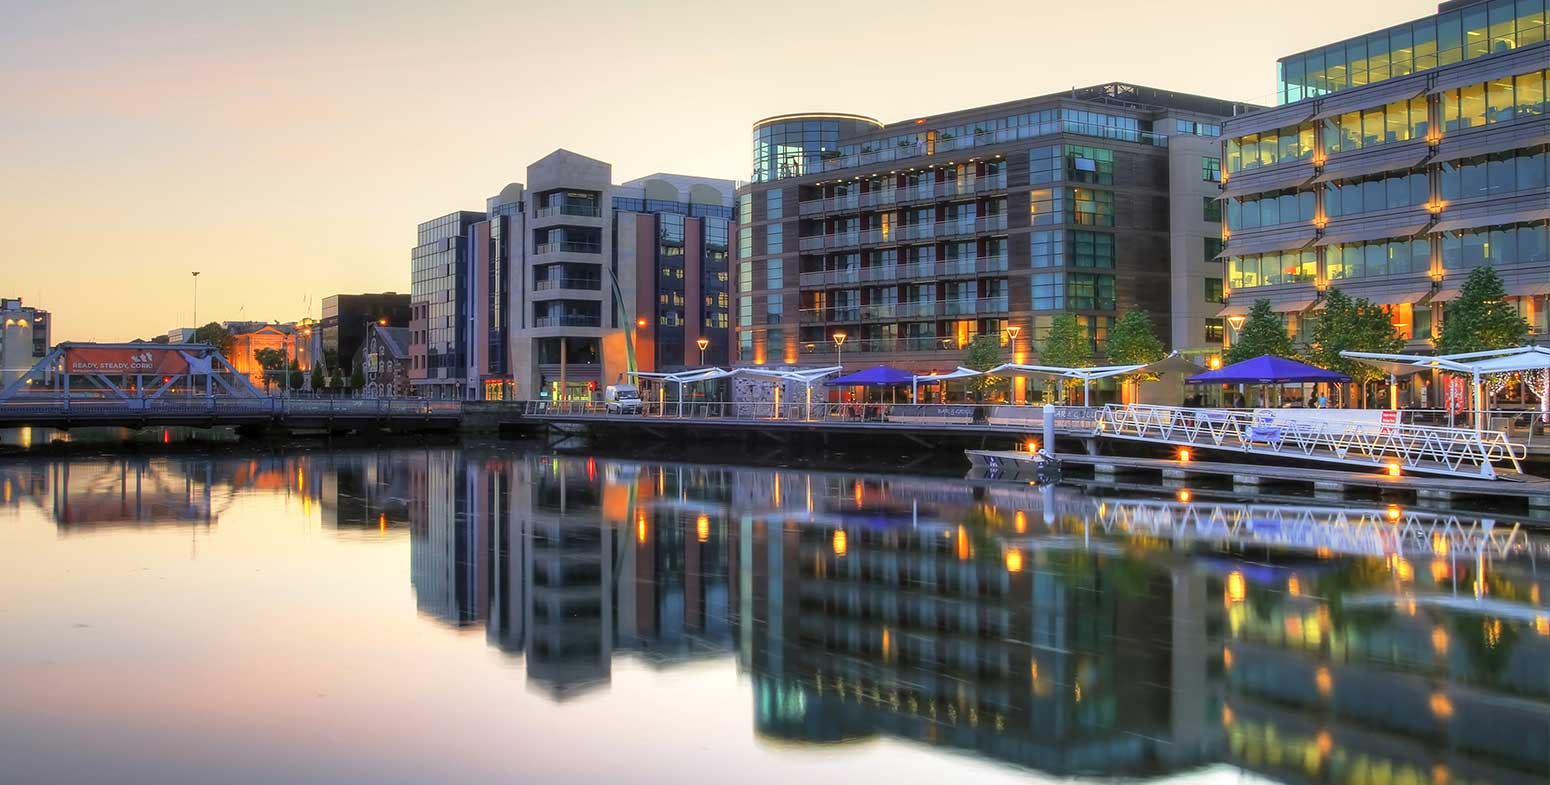 Top 21 Things To Do in Cork